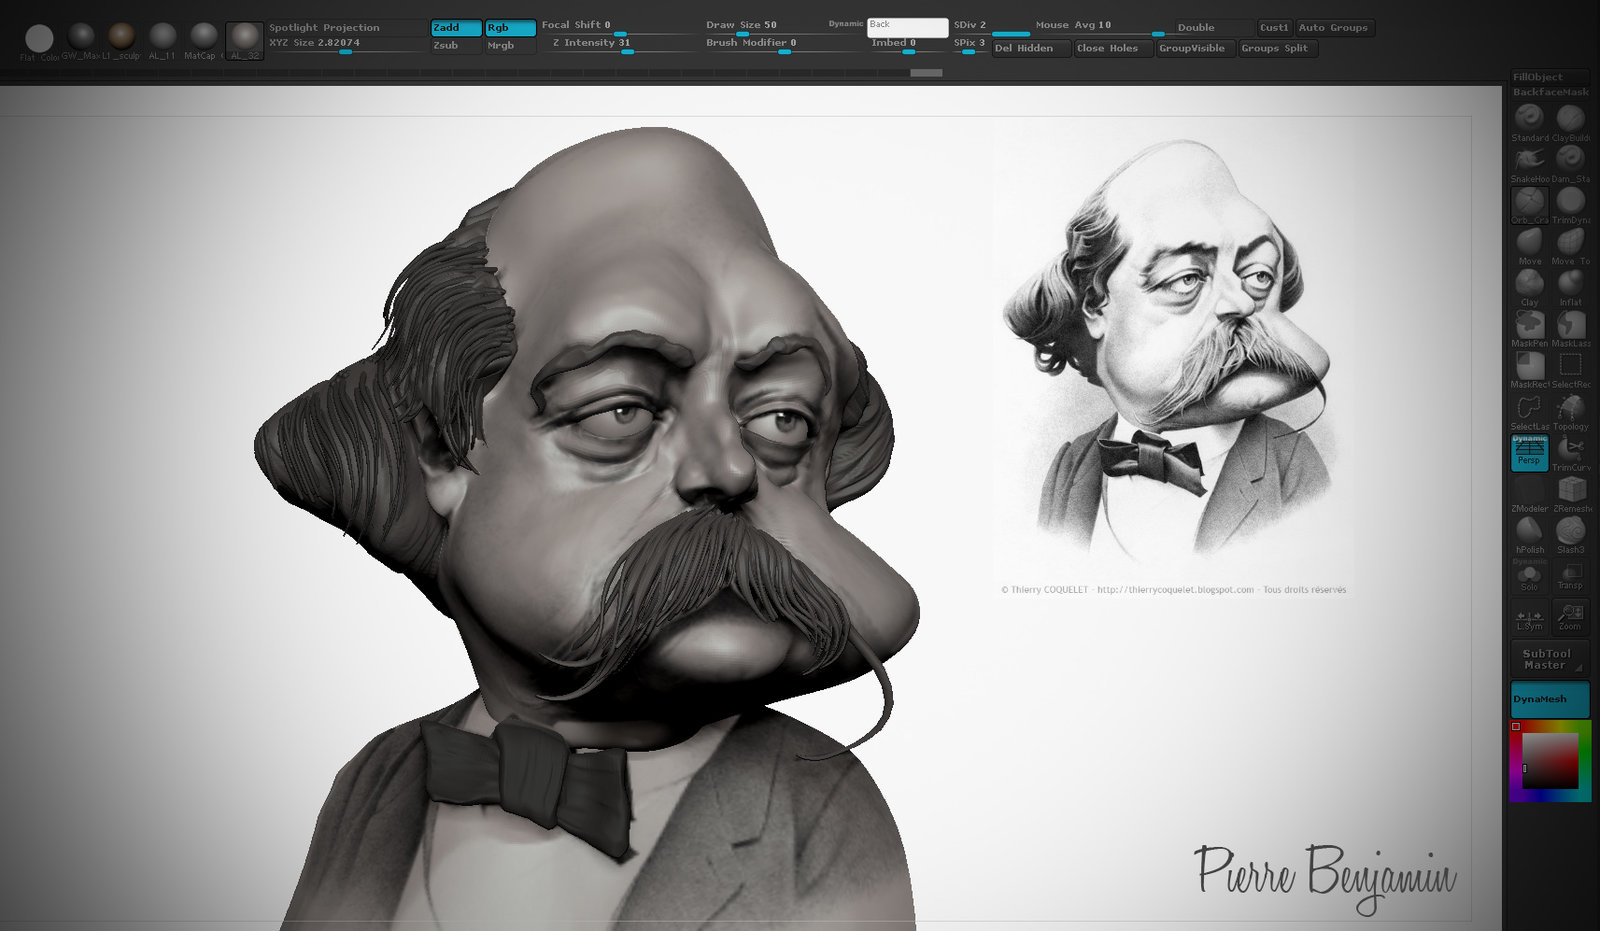 Speed sculpt zbrush of Gustave Flaubert based on 2D concept by Thierry Coquelet